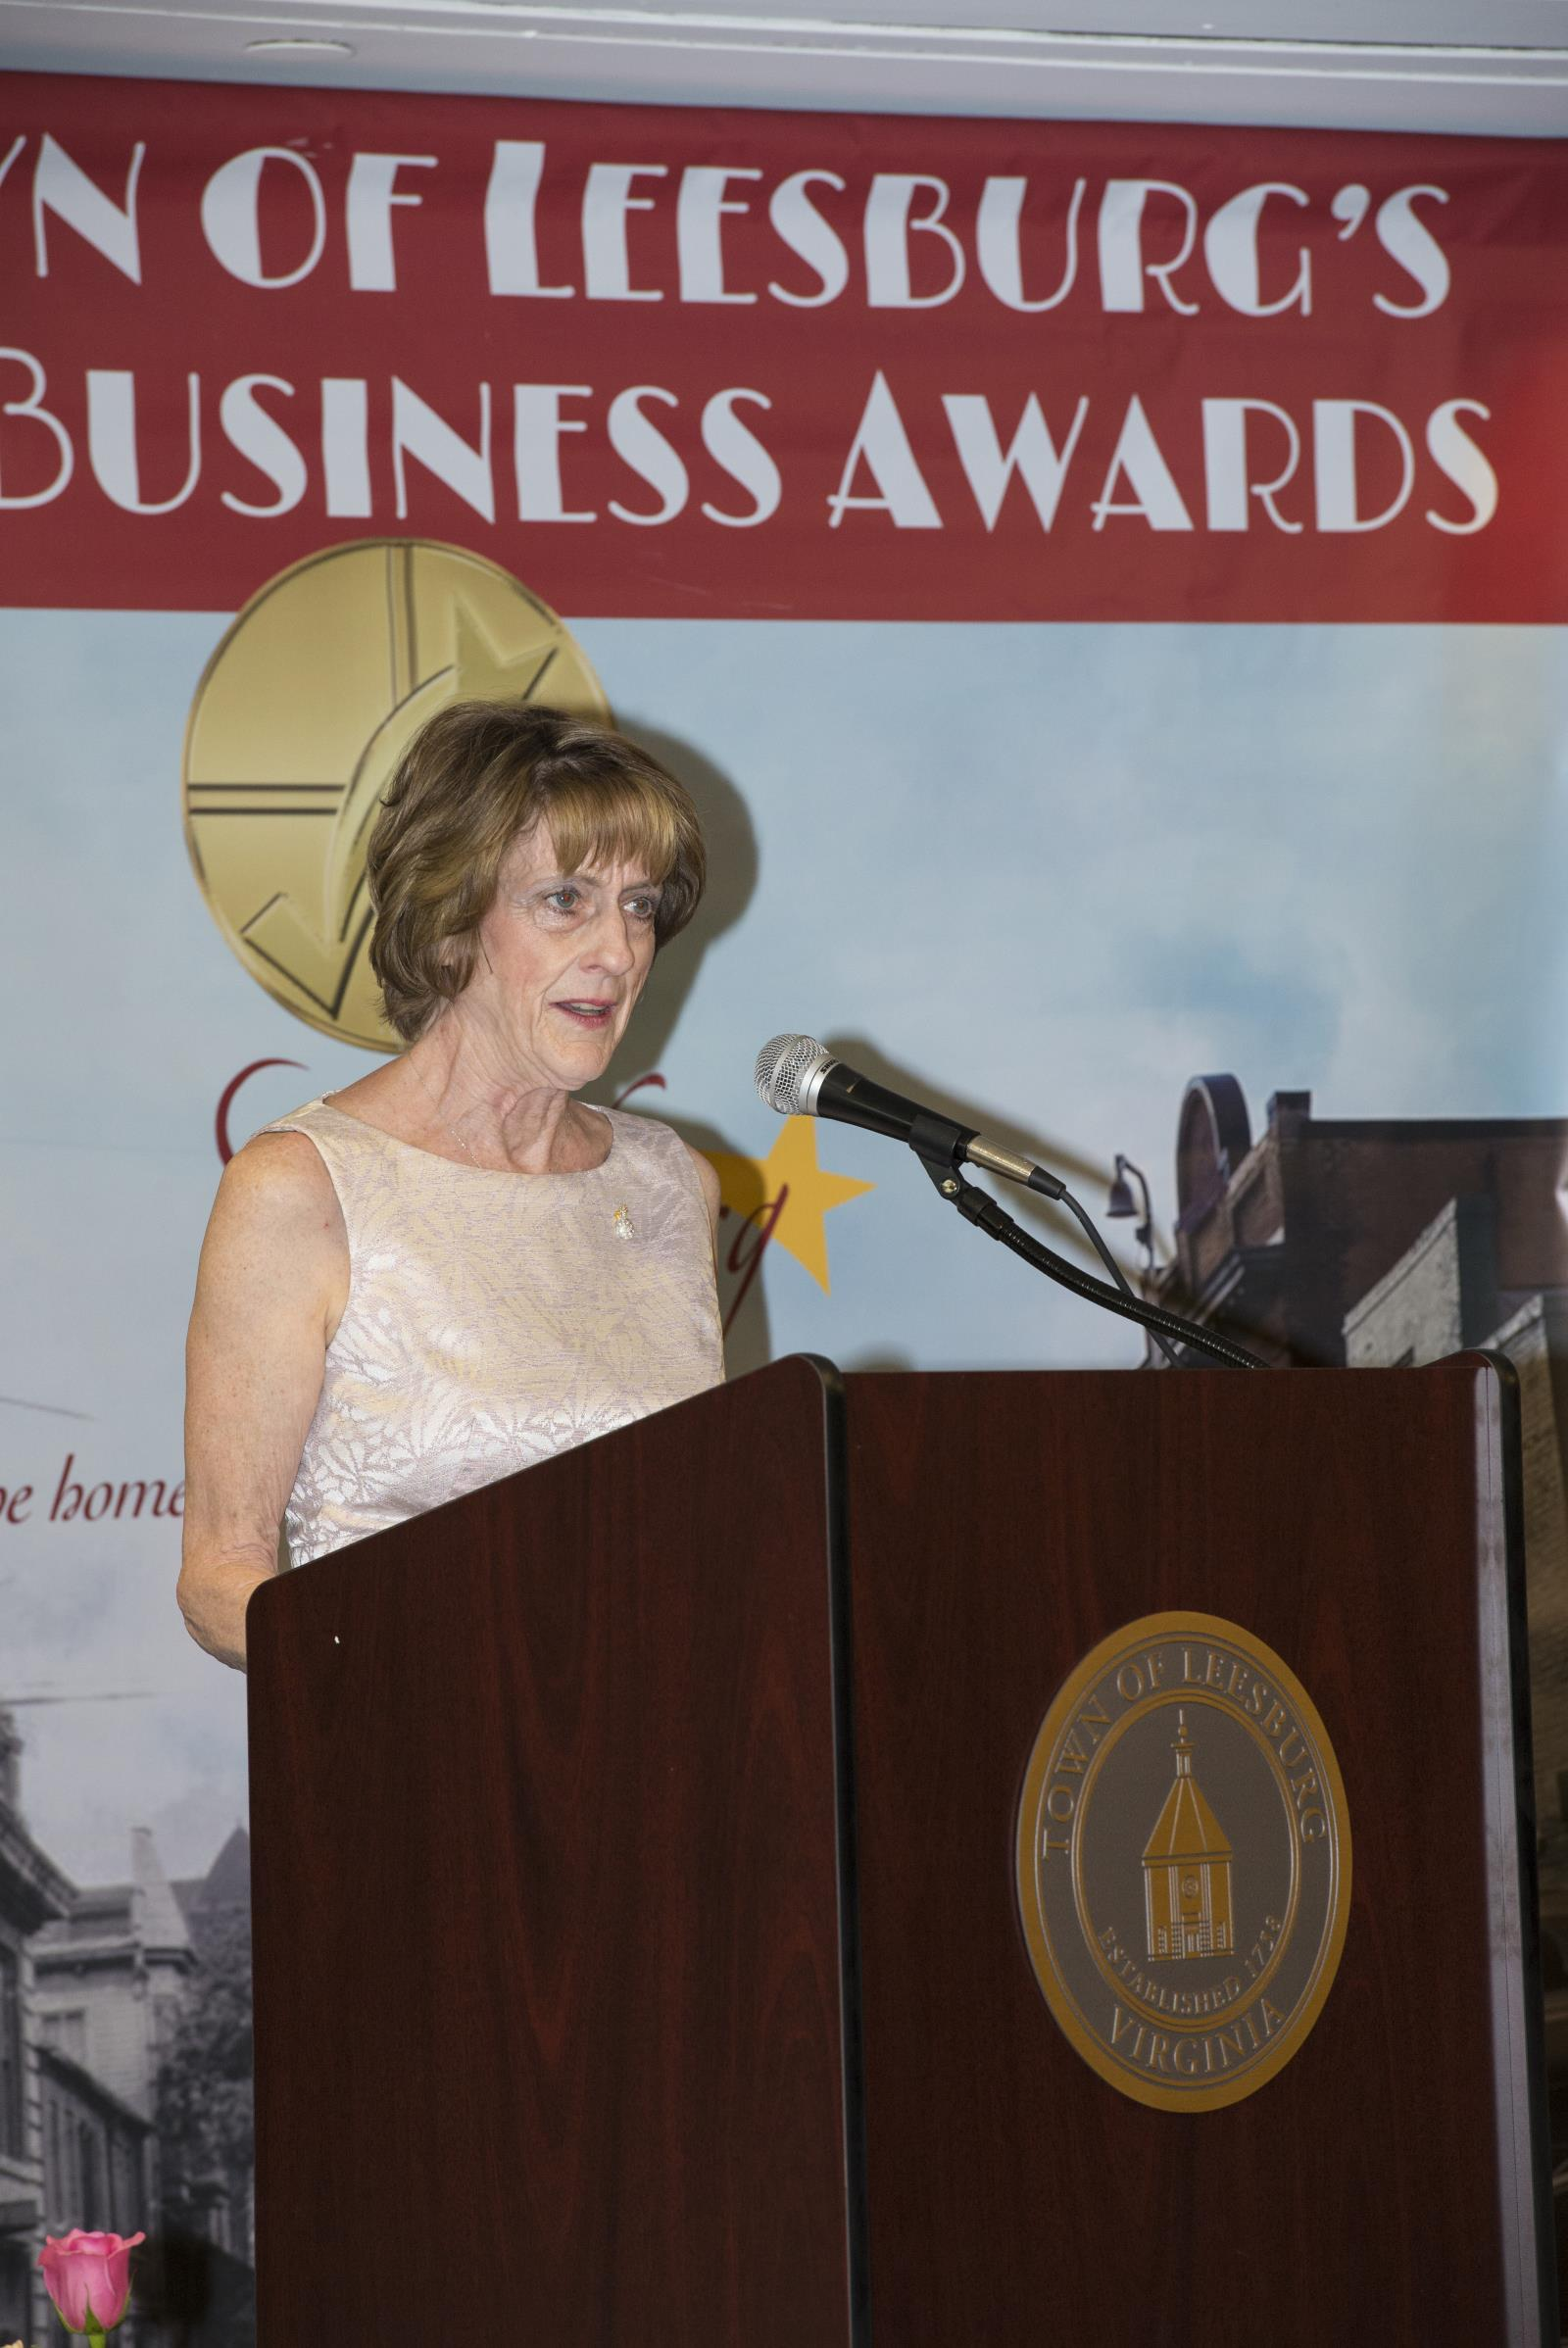 Mayor Kelly Burk speaks at the 2017 Leesburg Business Awards.